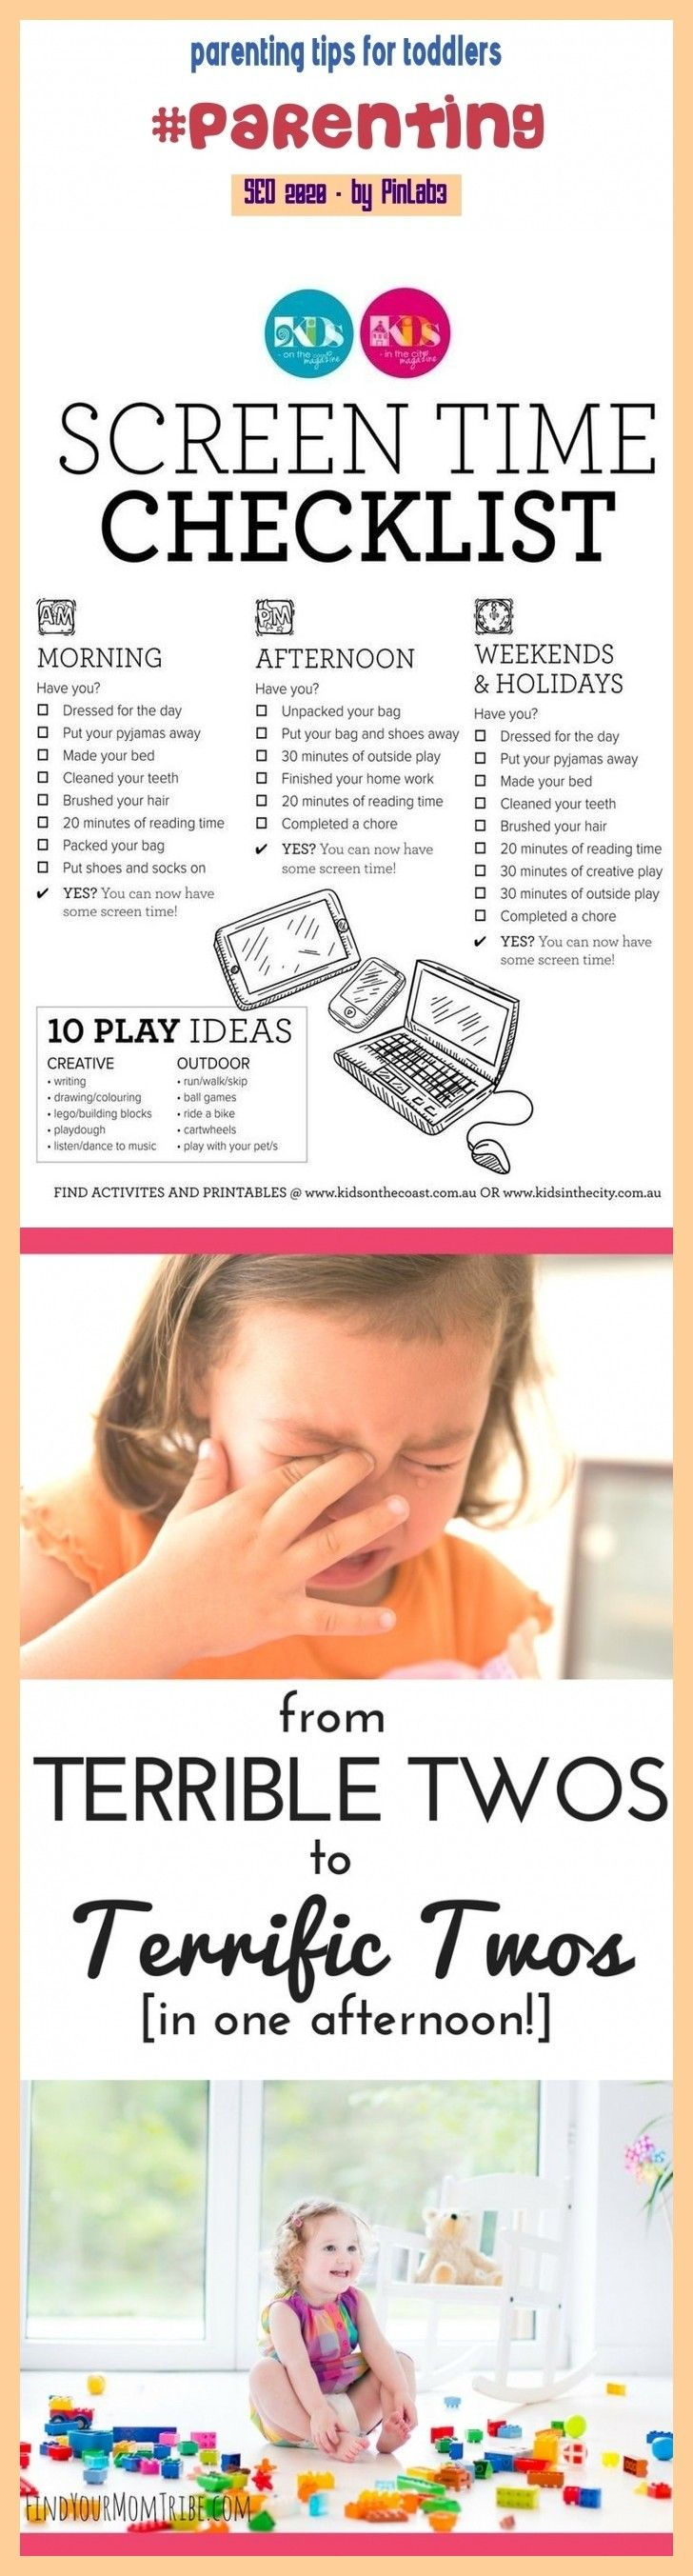 Photo of Parenting tips for toddlers #parenting #toddlers #elterntipps #kleinkinder #cons…